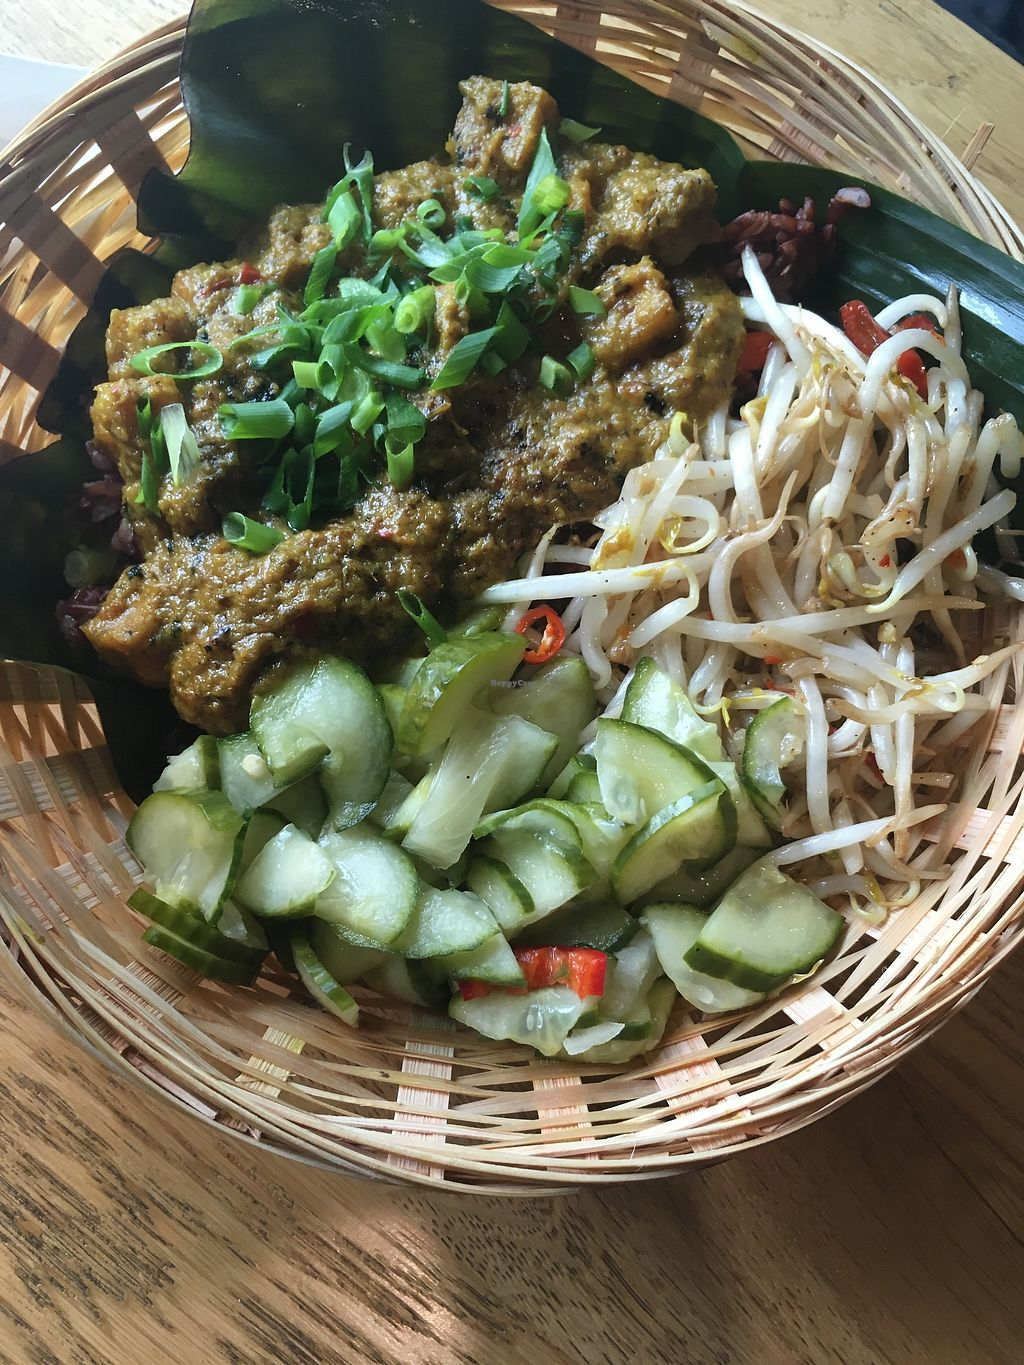 """Photo of Warung Jakarta  by <a href=""""/members/profile/LivvyCropper"""">LivvyCropper</a> <br/>Vegan rendang  <br/> October 9, 2017  - <a href='/contact/abuse/image/91724/313632'>Report</a>"""